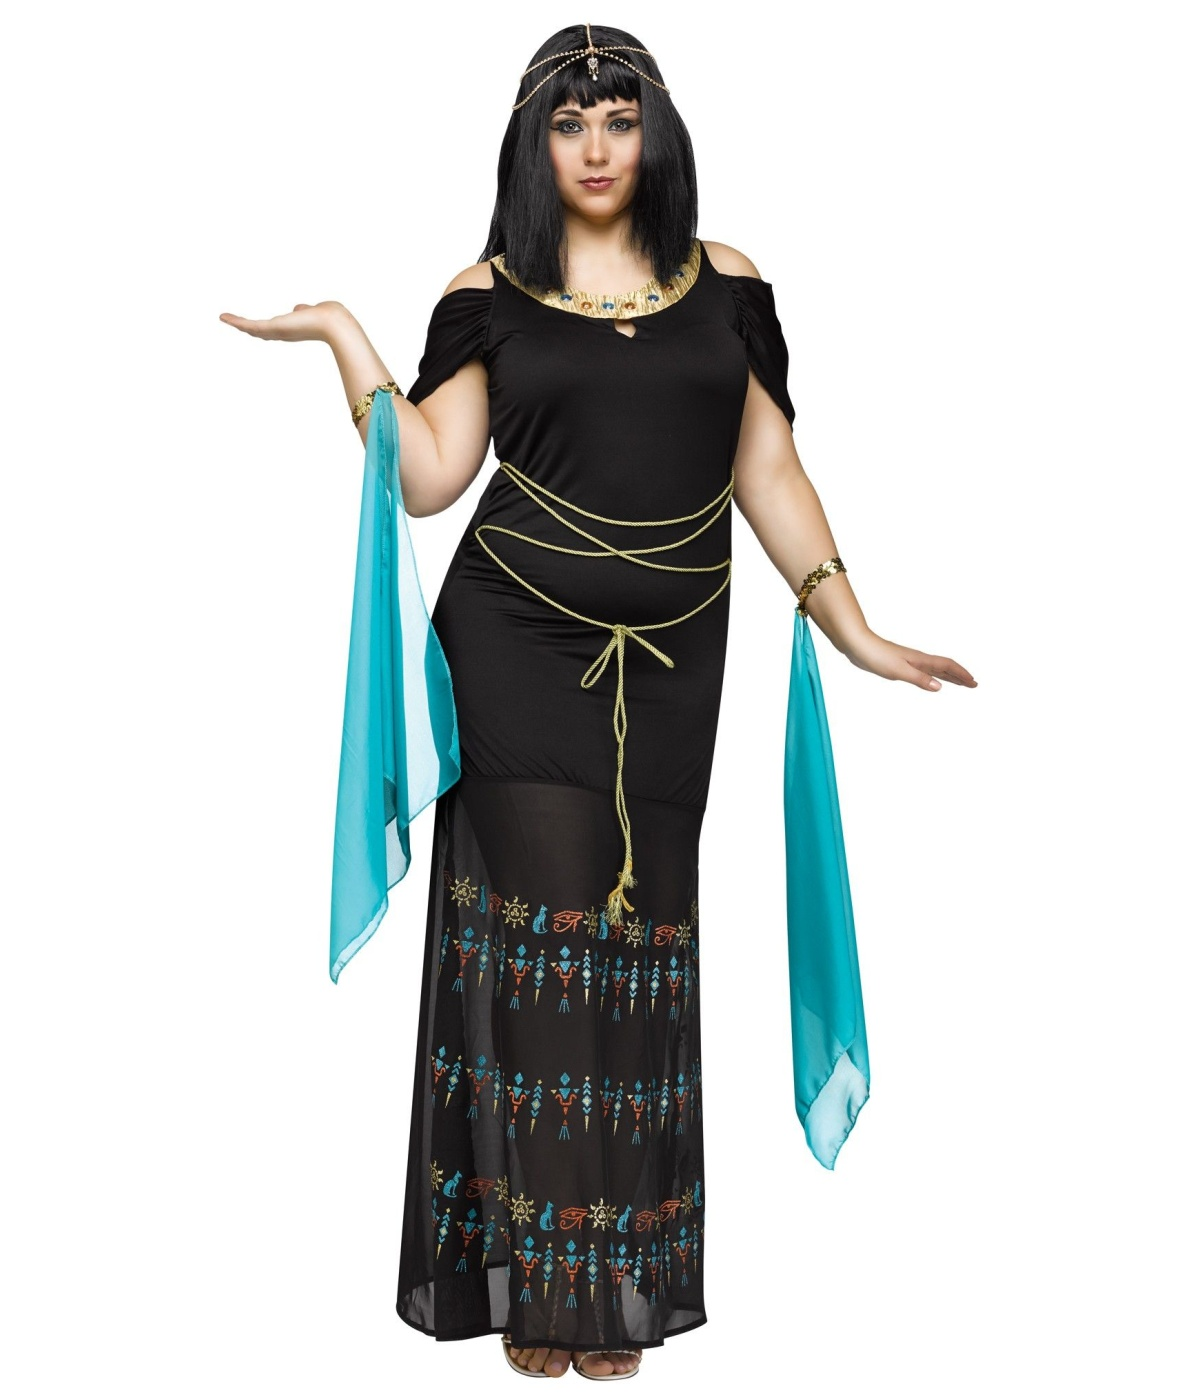 b67a067dc82a9 Egyptian Hieroglyph Queen Womens Plus size Costume - Egyptian Costumes